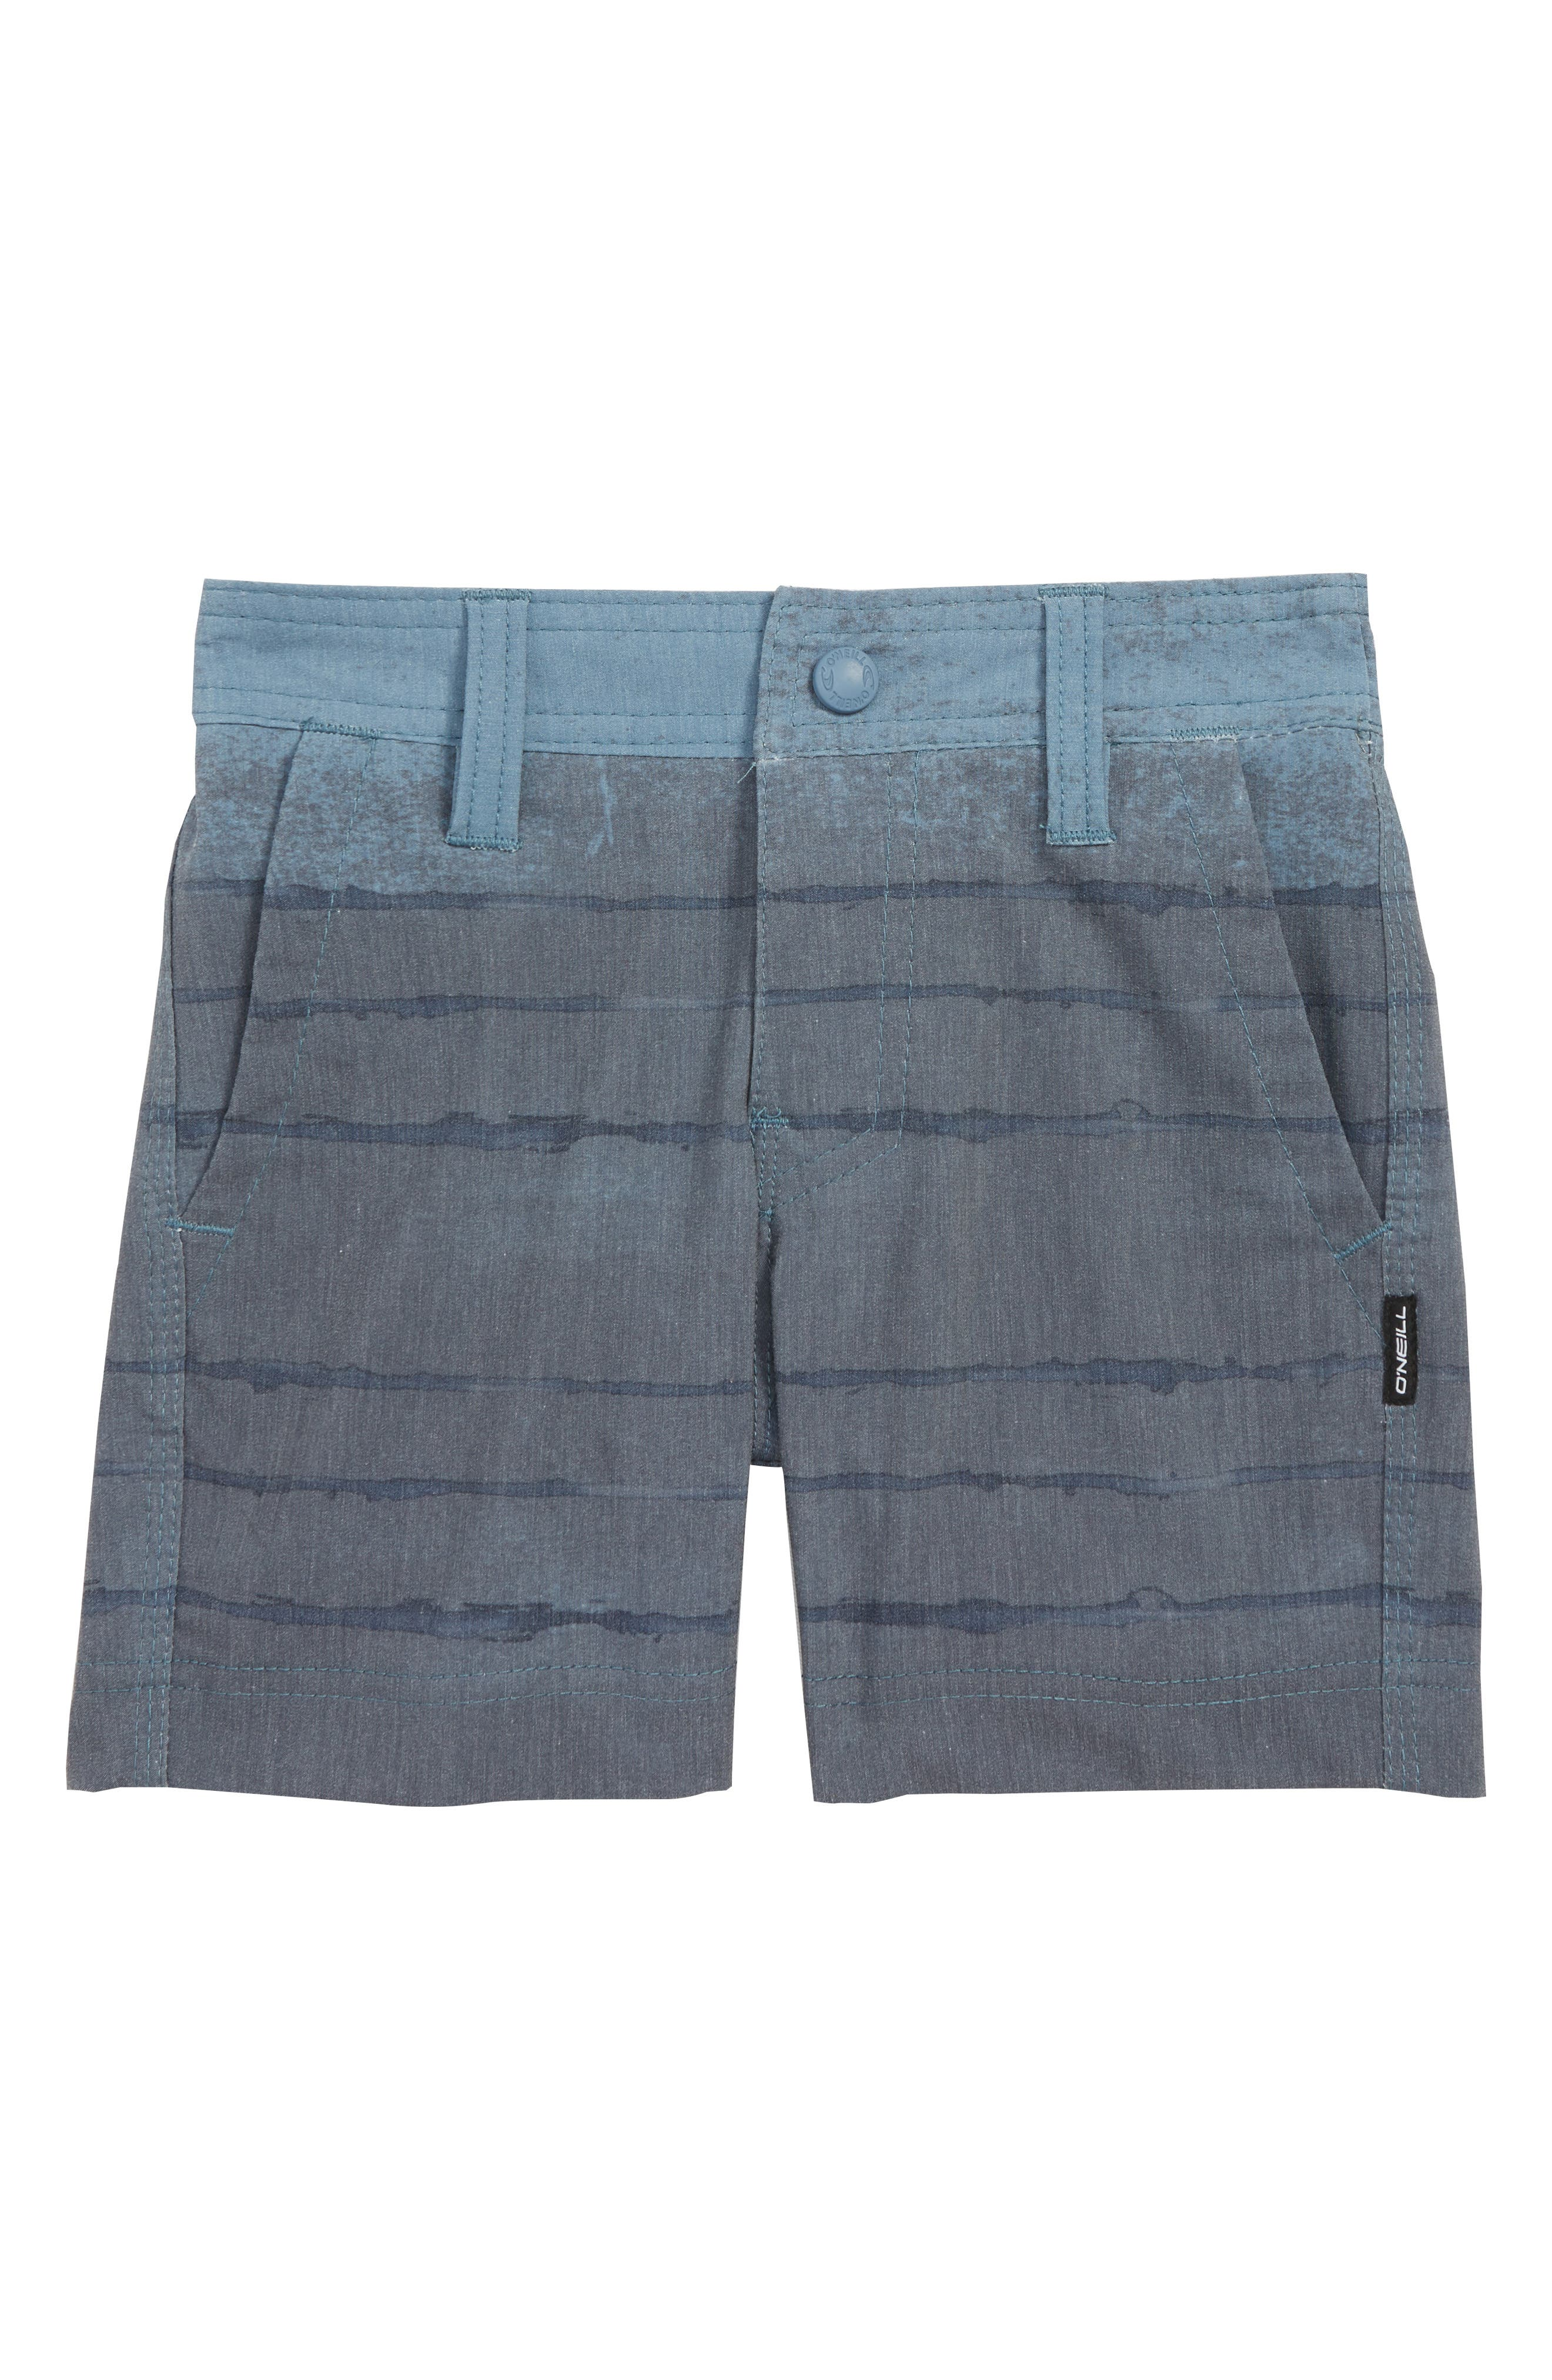 Tye Striper Hybrid Shorts,                             Main thumbnail 1, color,                             DUST BLUE